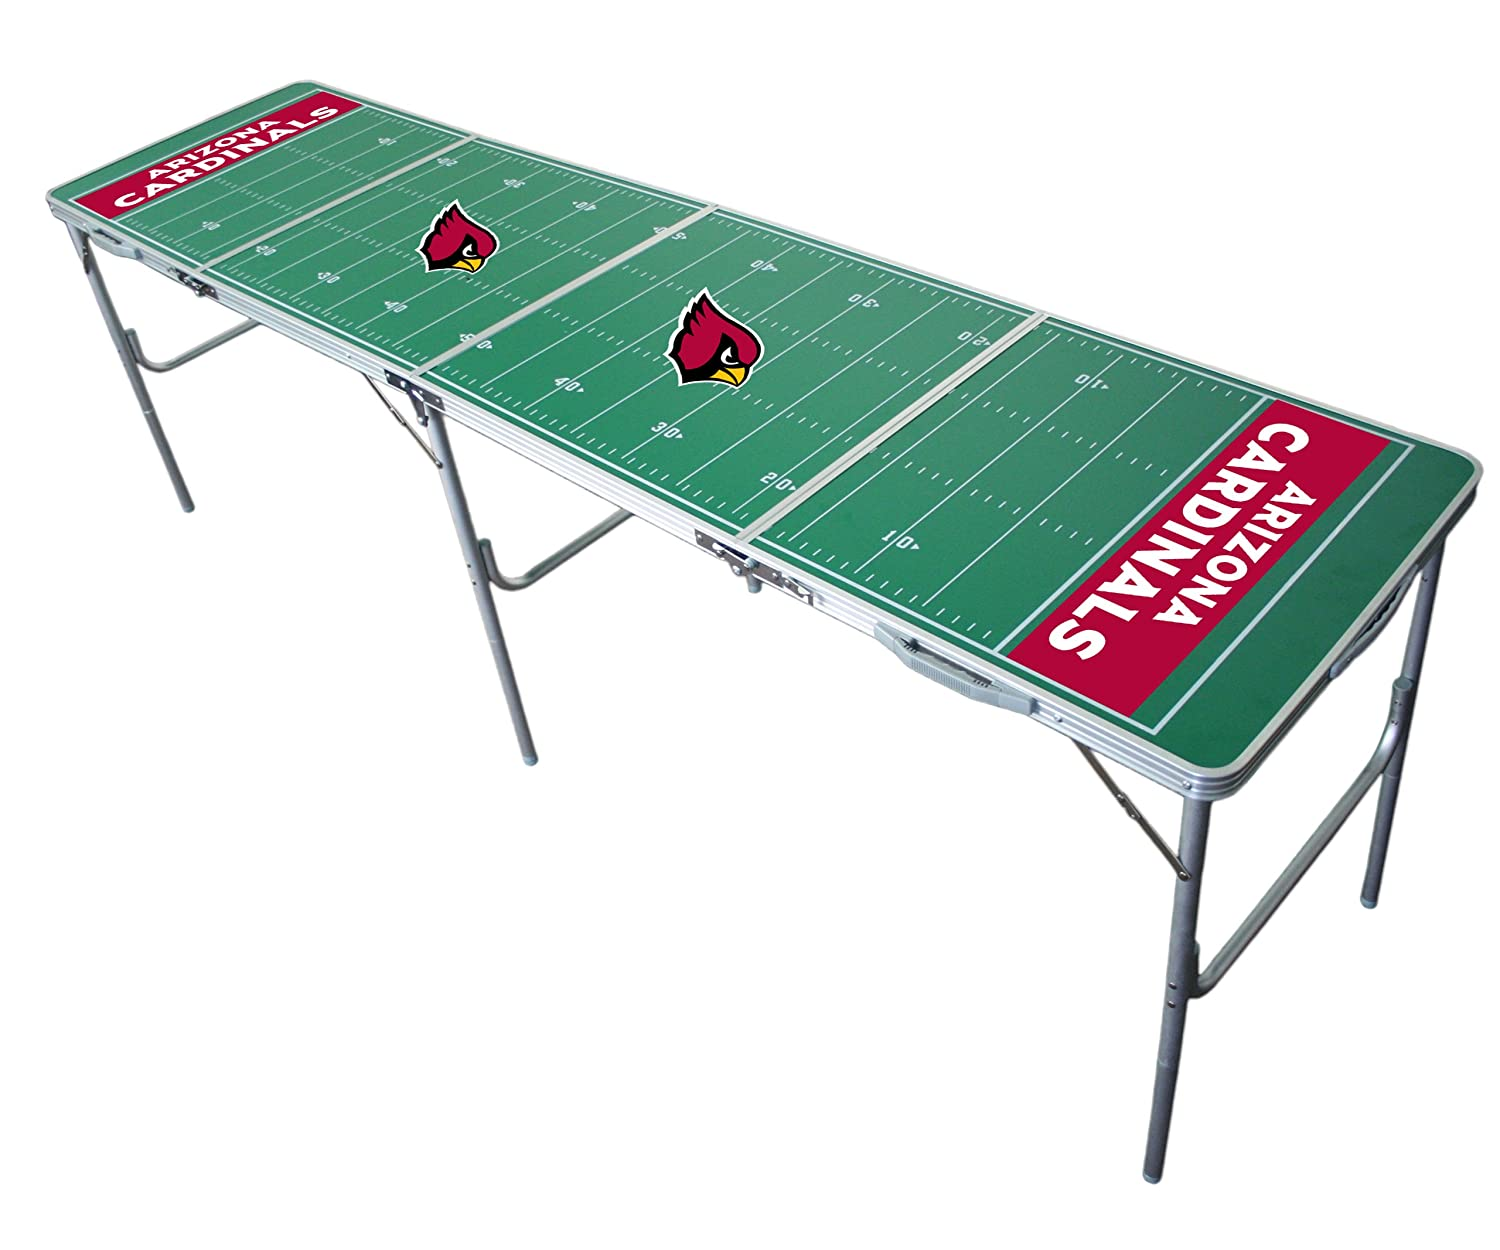 Beer pong table dimensions - Beer Pong Table Dimensions 53